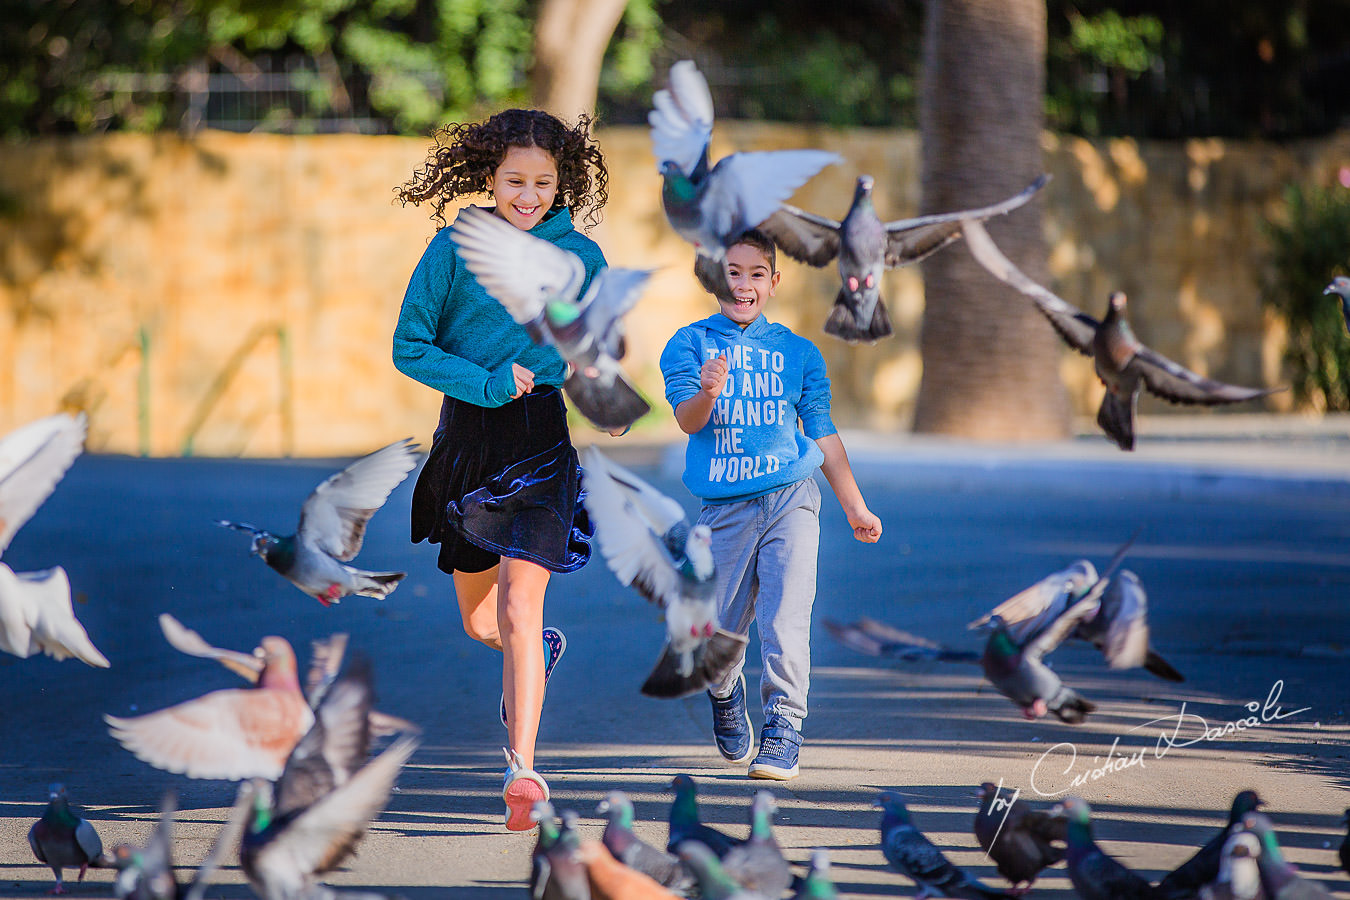 Young brother and sister running through the pigeons, moments captured by Cristian Dascalu during a beautiful Limassol family photography photo session.